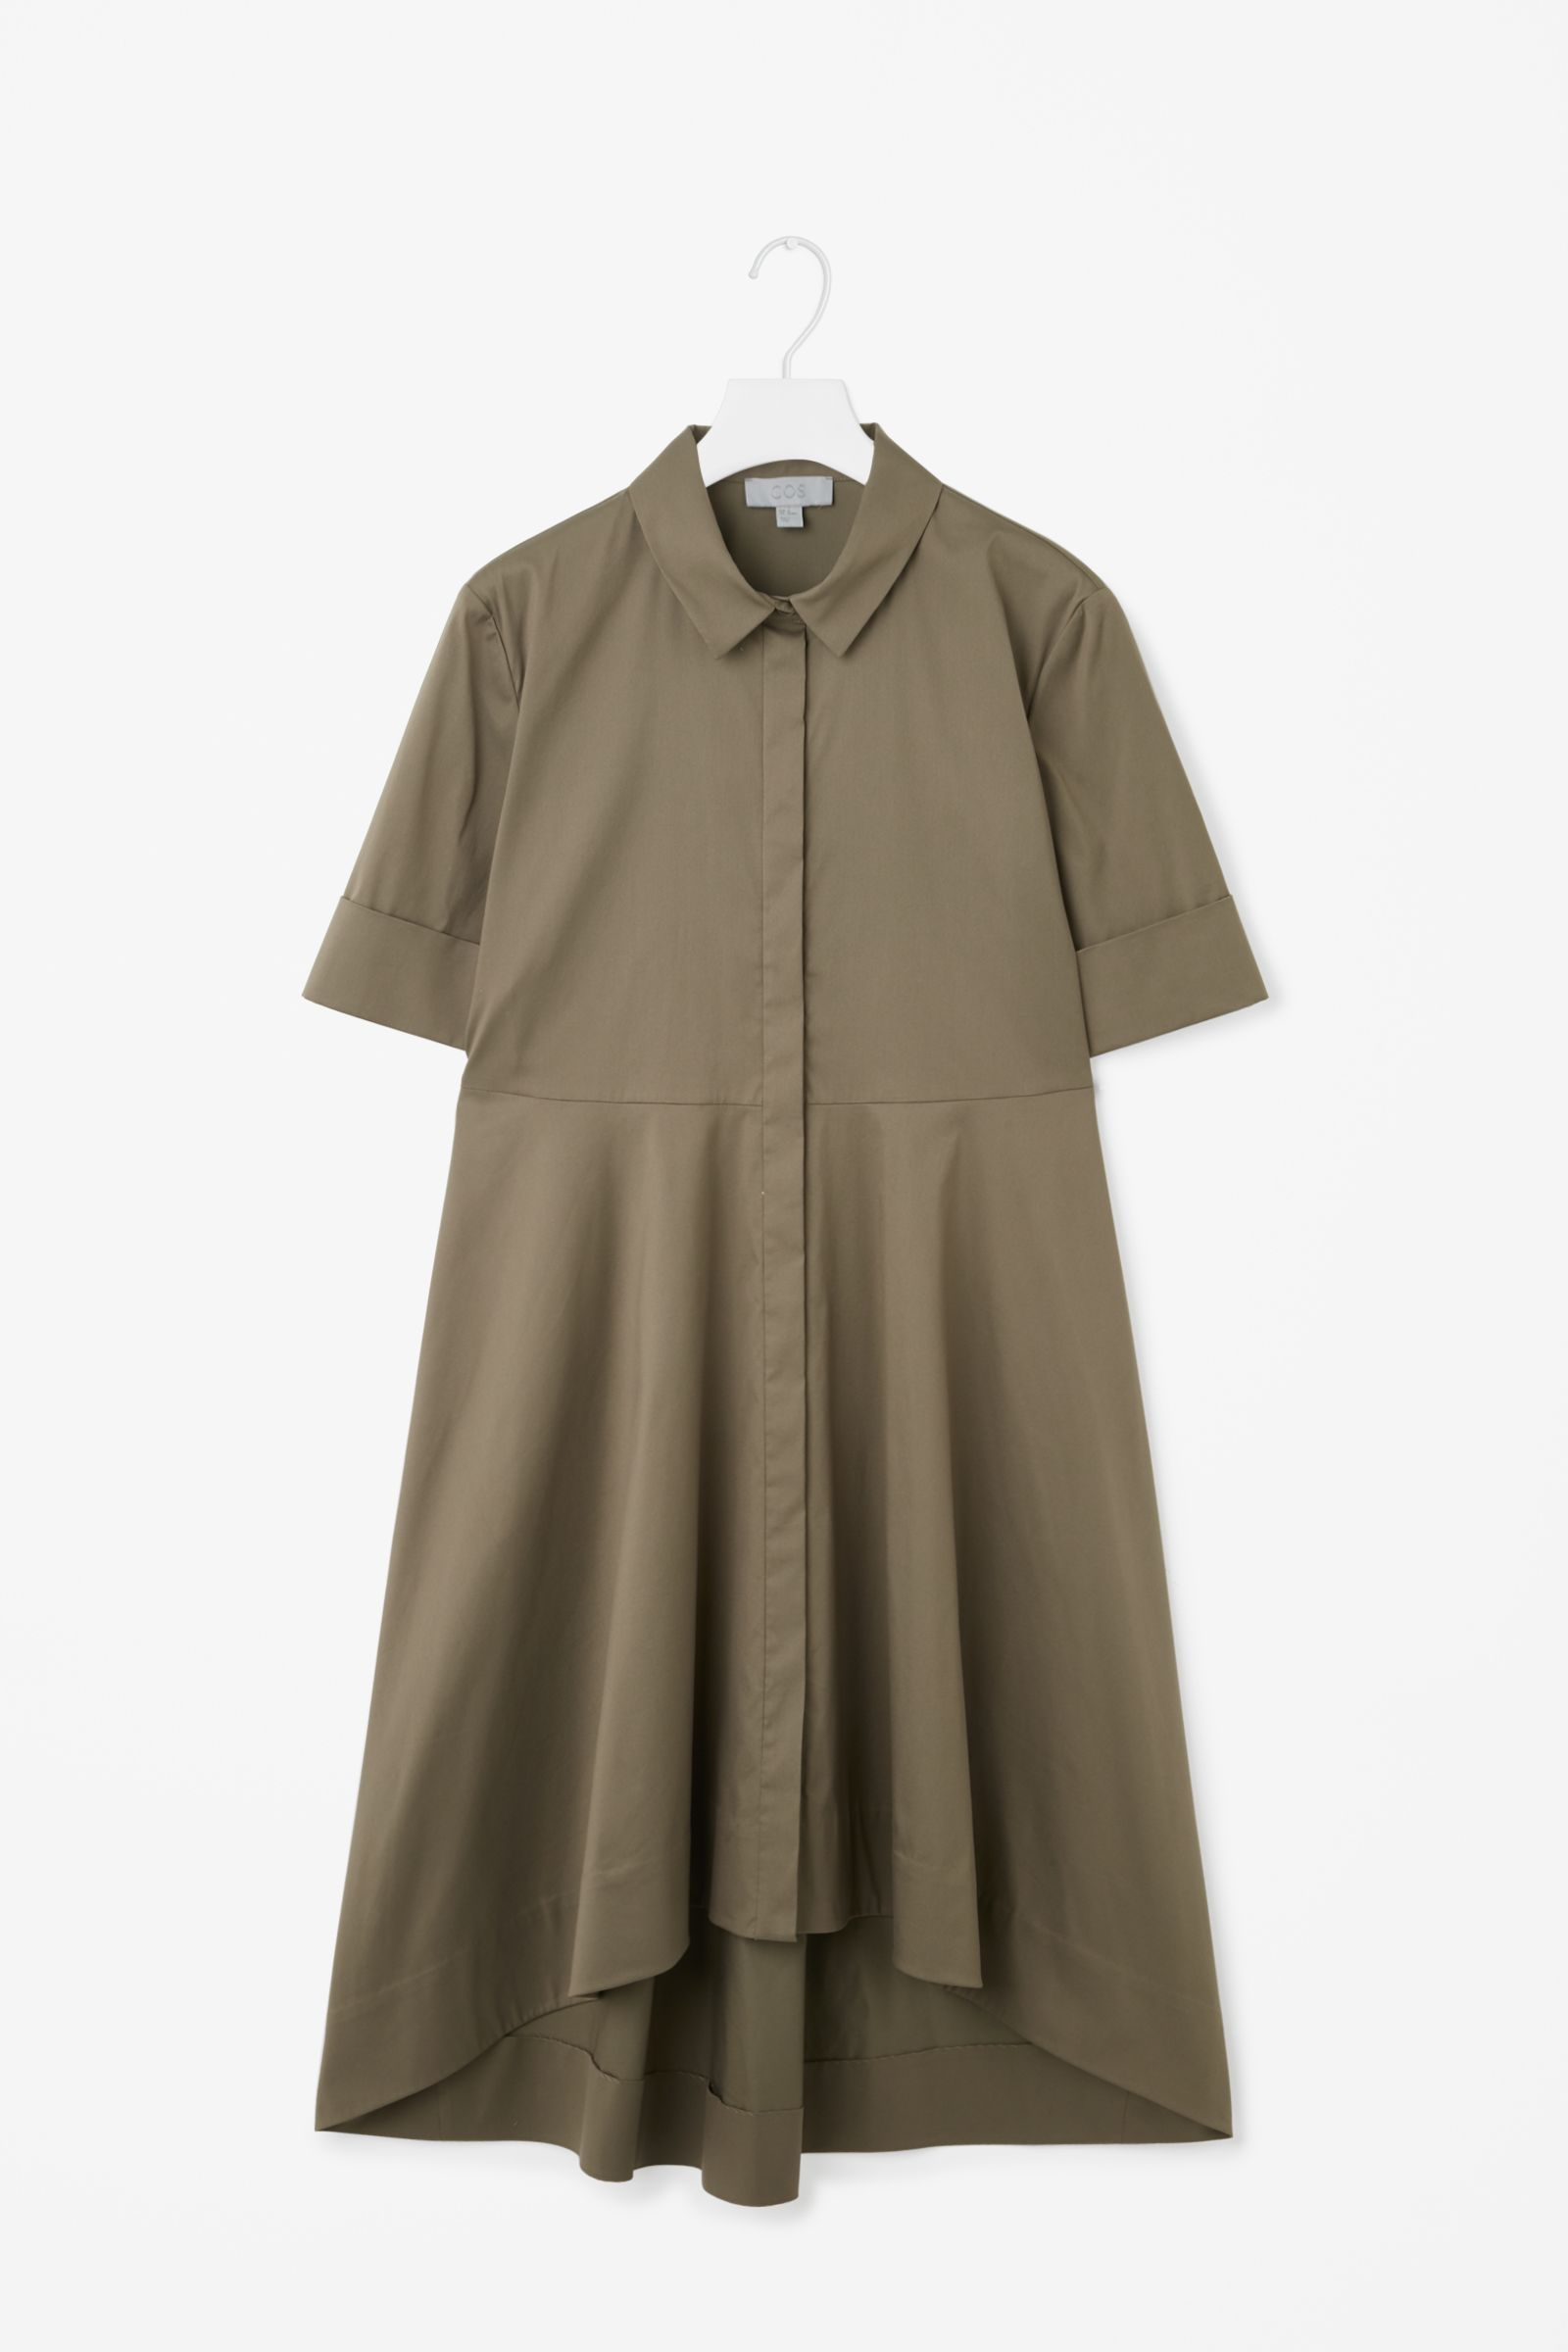 COS image 4 of Short sleeve shirt dress in Khaki Green | style ...